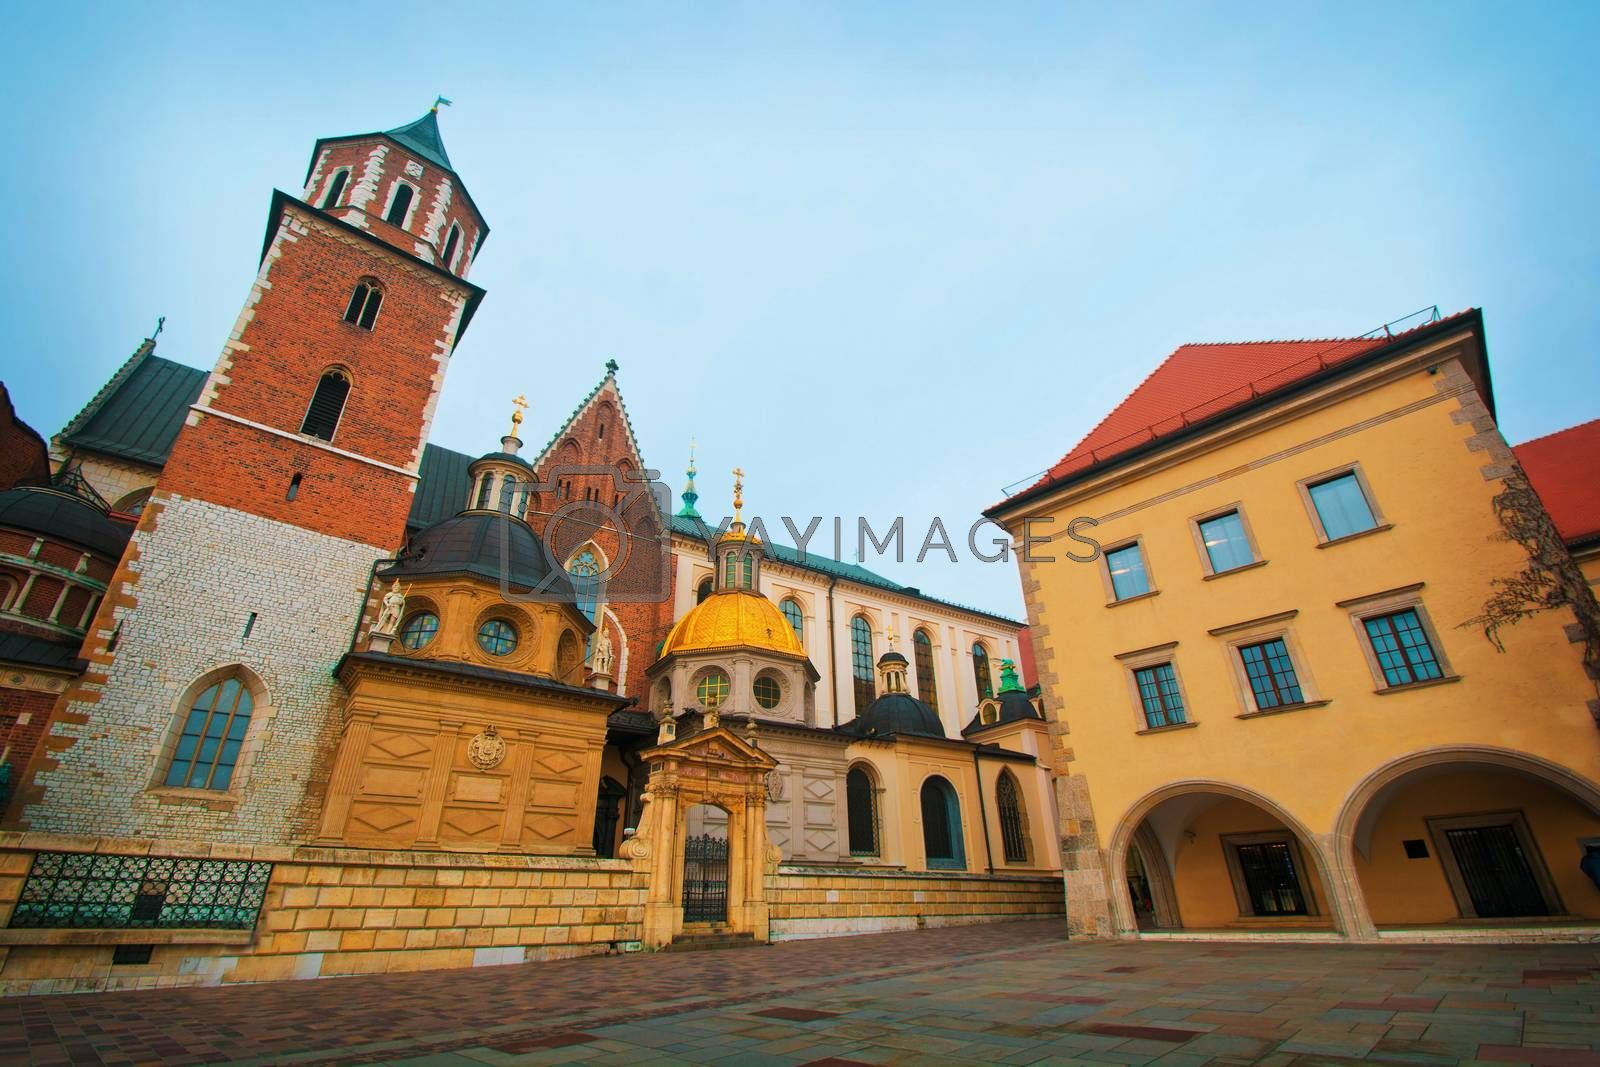 Basilica of Saints Stanislaus and Wenceslaus on Wawel, Cracow, Poland.